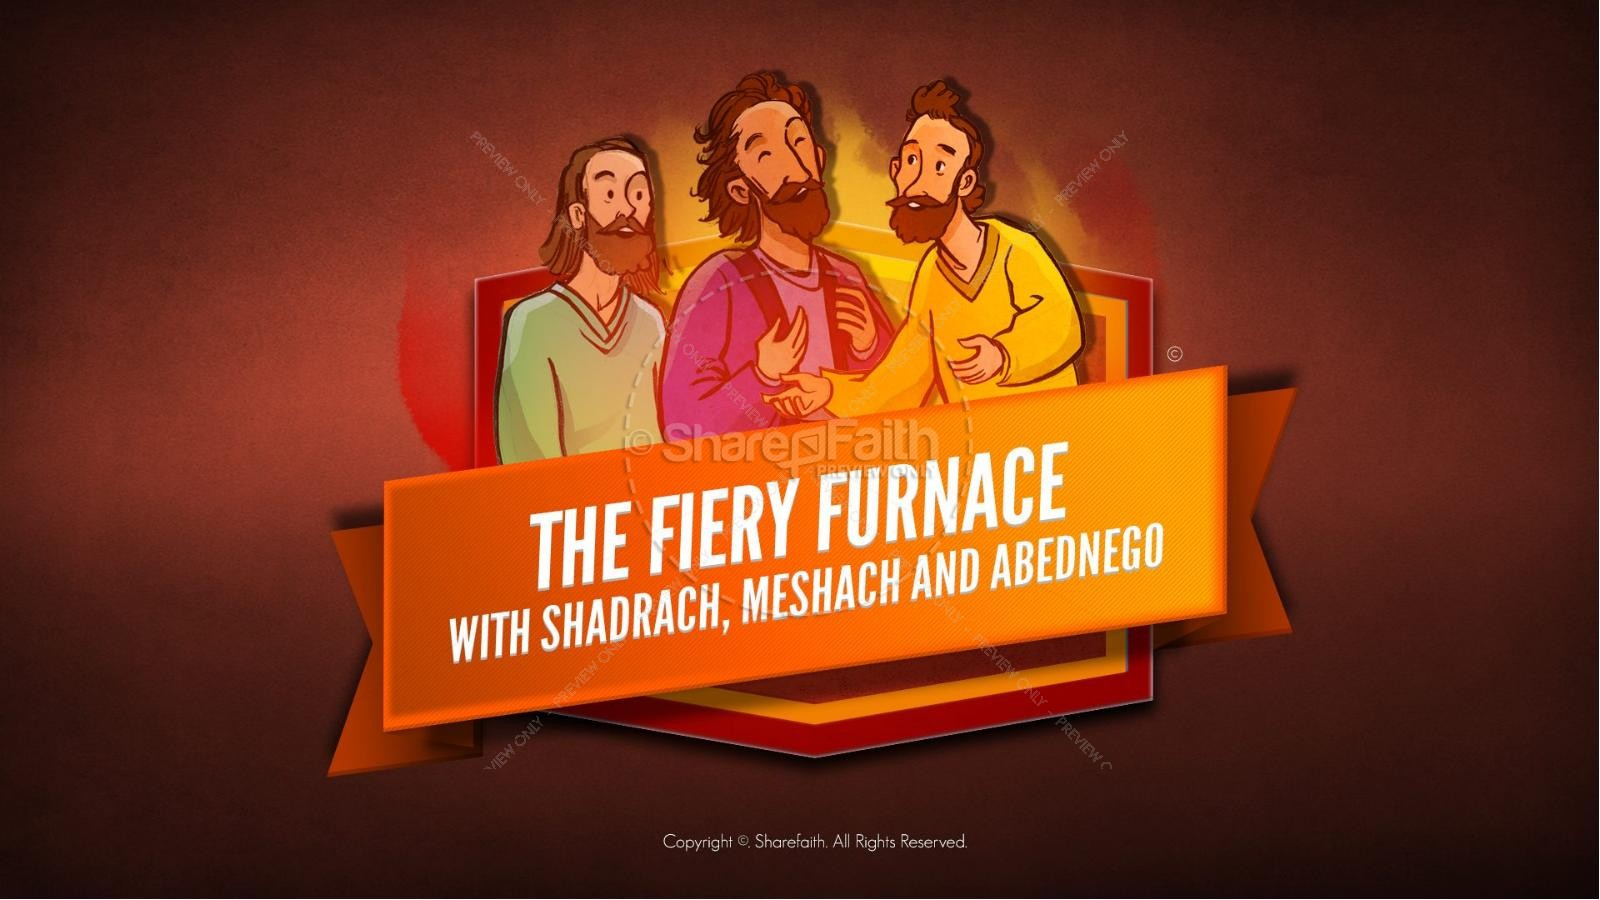 The Fiery Furnace with Shadrach, Meshach and Abednego Kids Bible Story